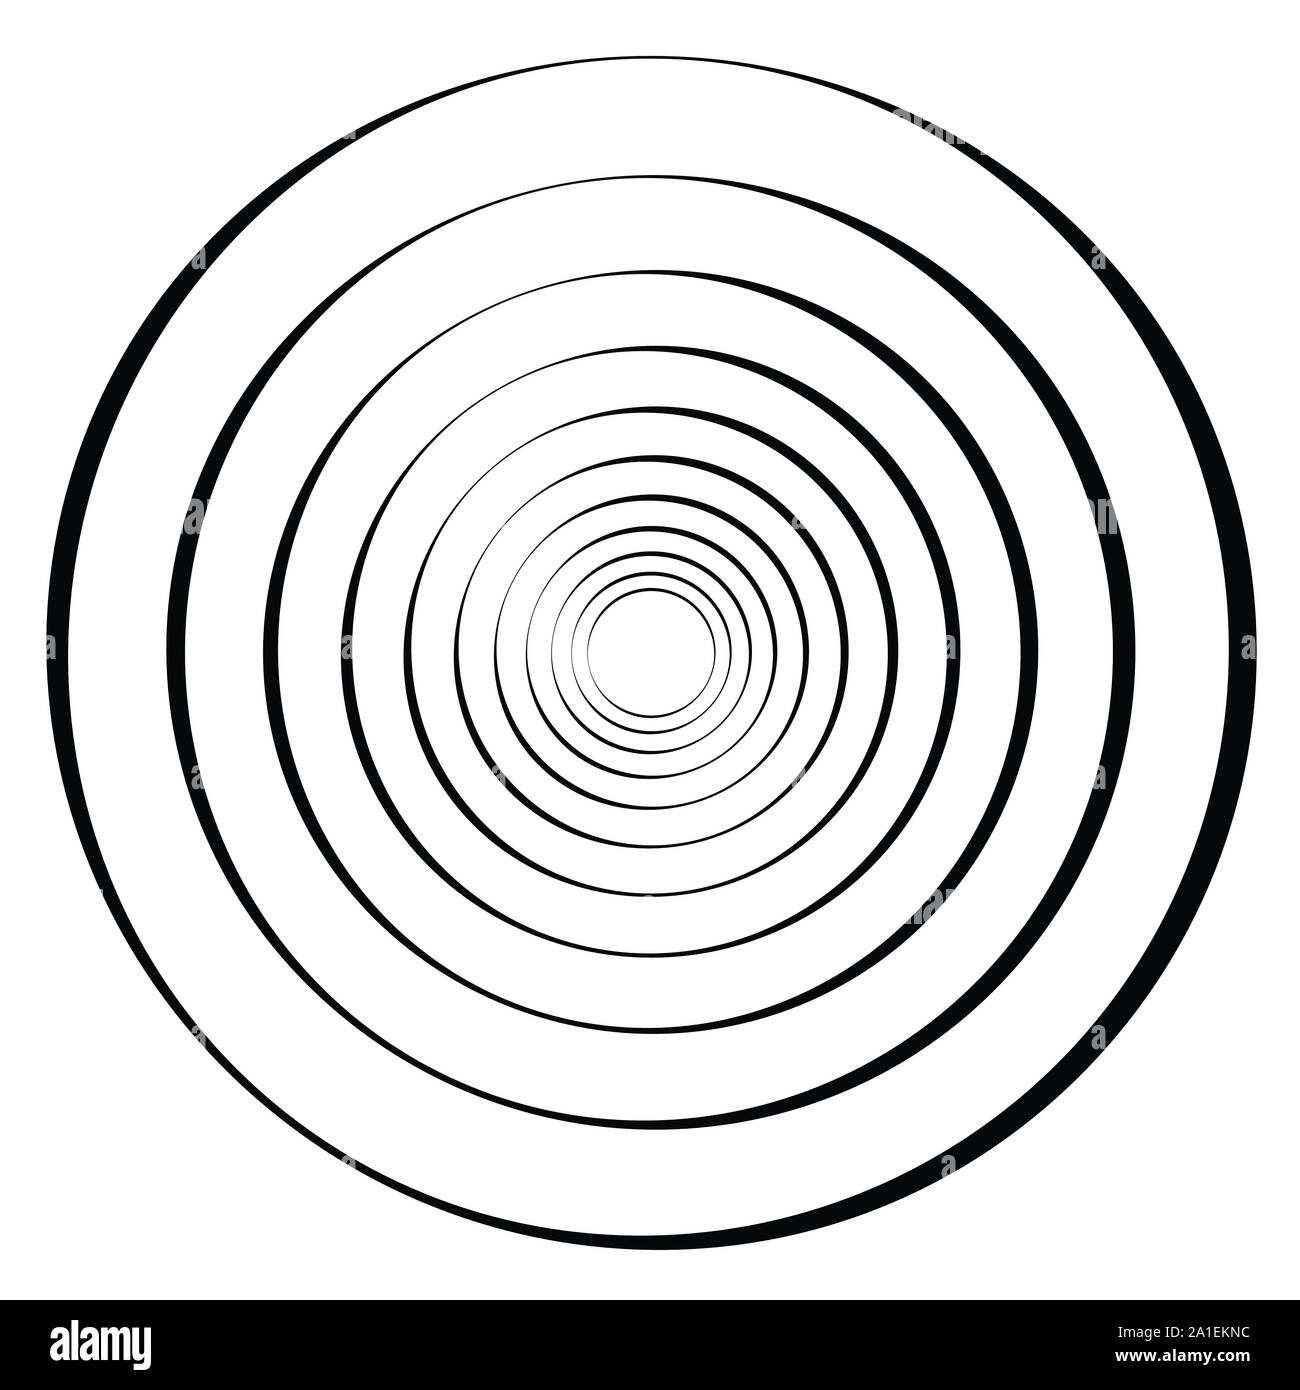 Shape with rotation, tiwrl effect Geometric abstract spiralling design element Stock Vector